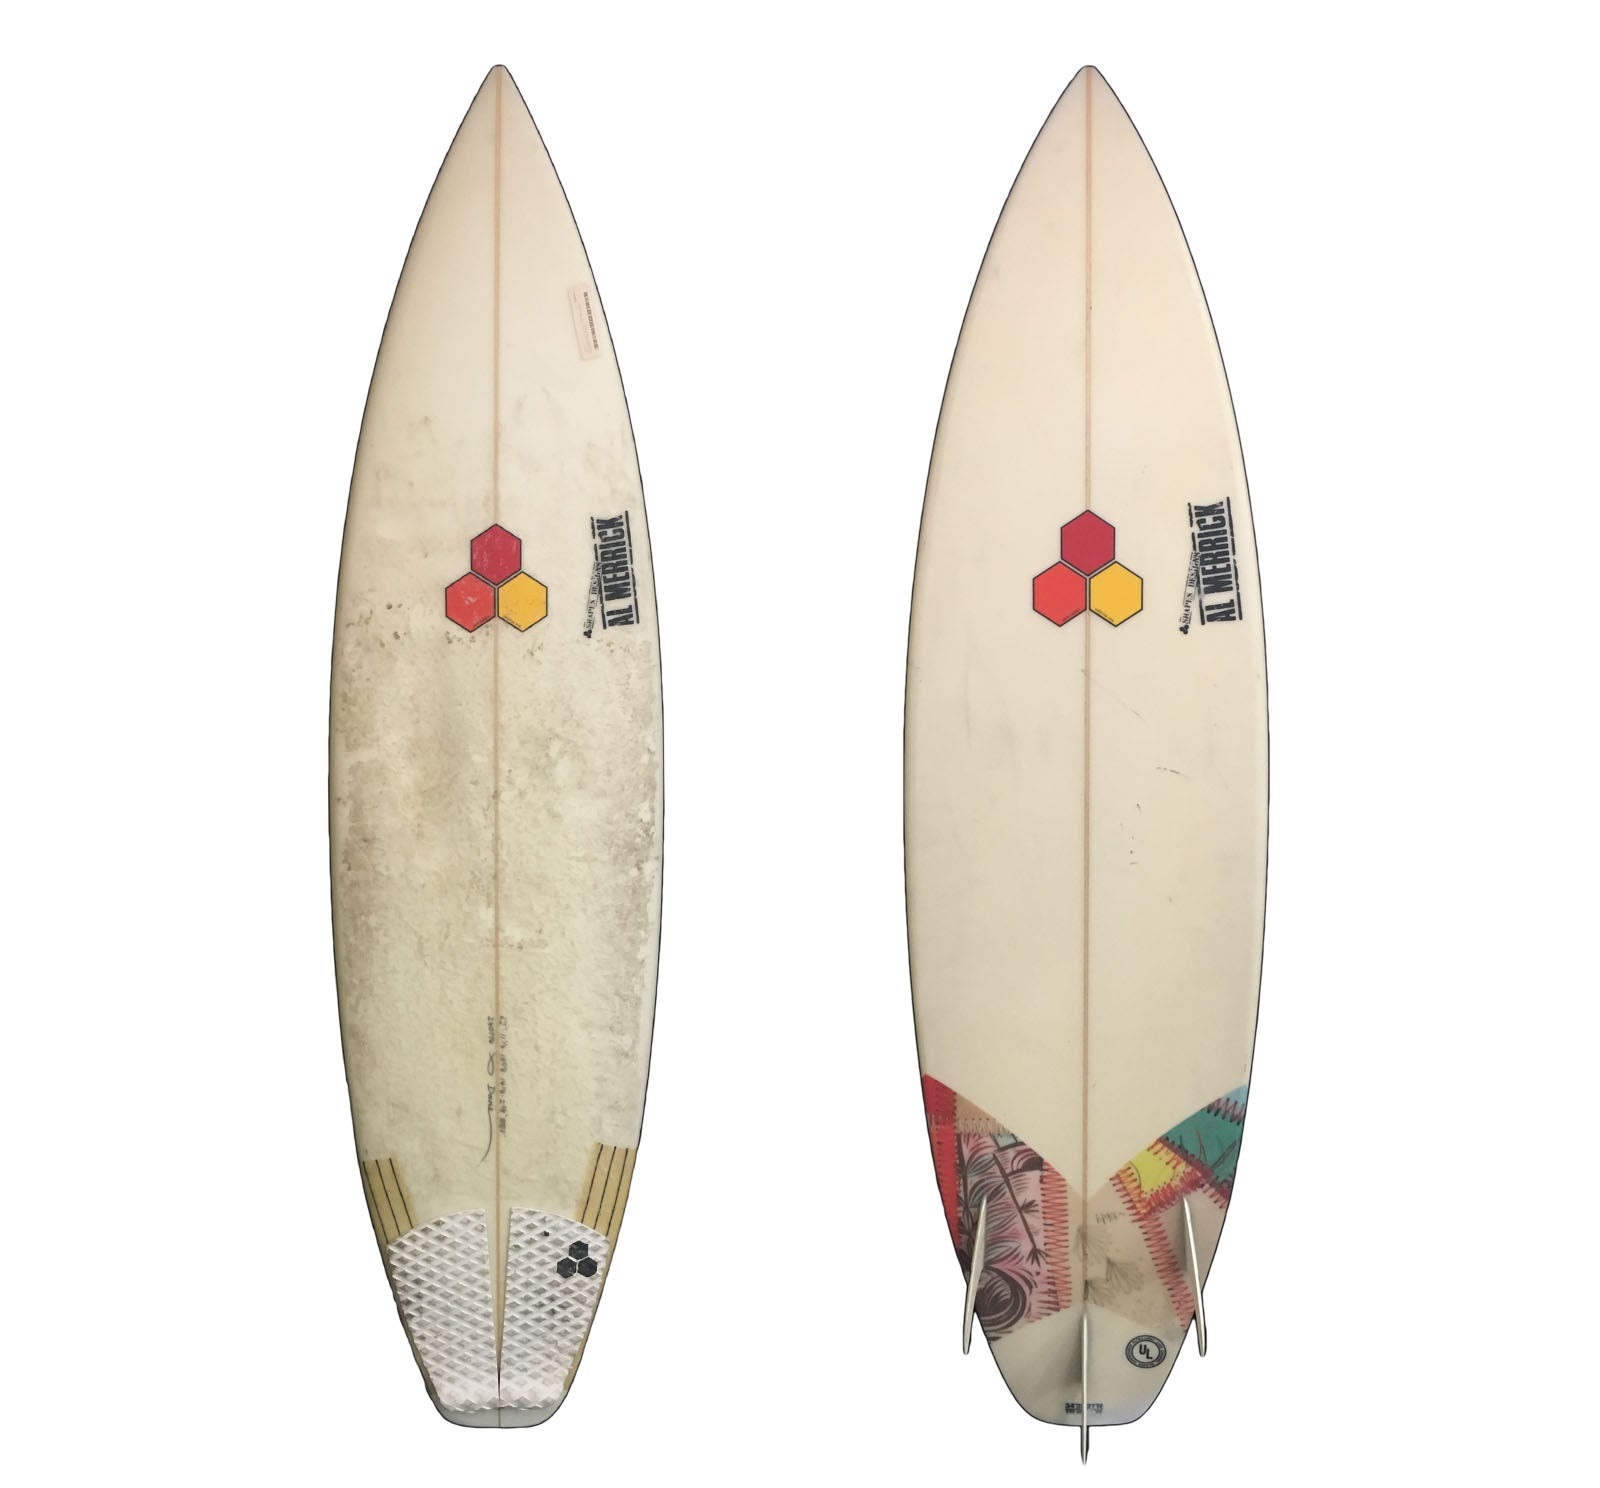 Channel Islands MB3 6'2 x 18 5/8 x 2 3/8 Used Surfboard (Glassed-On Fins) (Custom for Dane Reynolds)